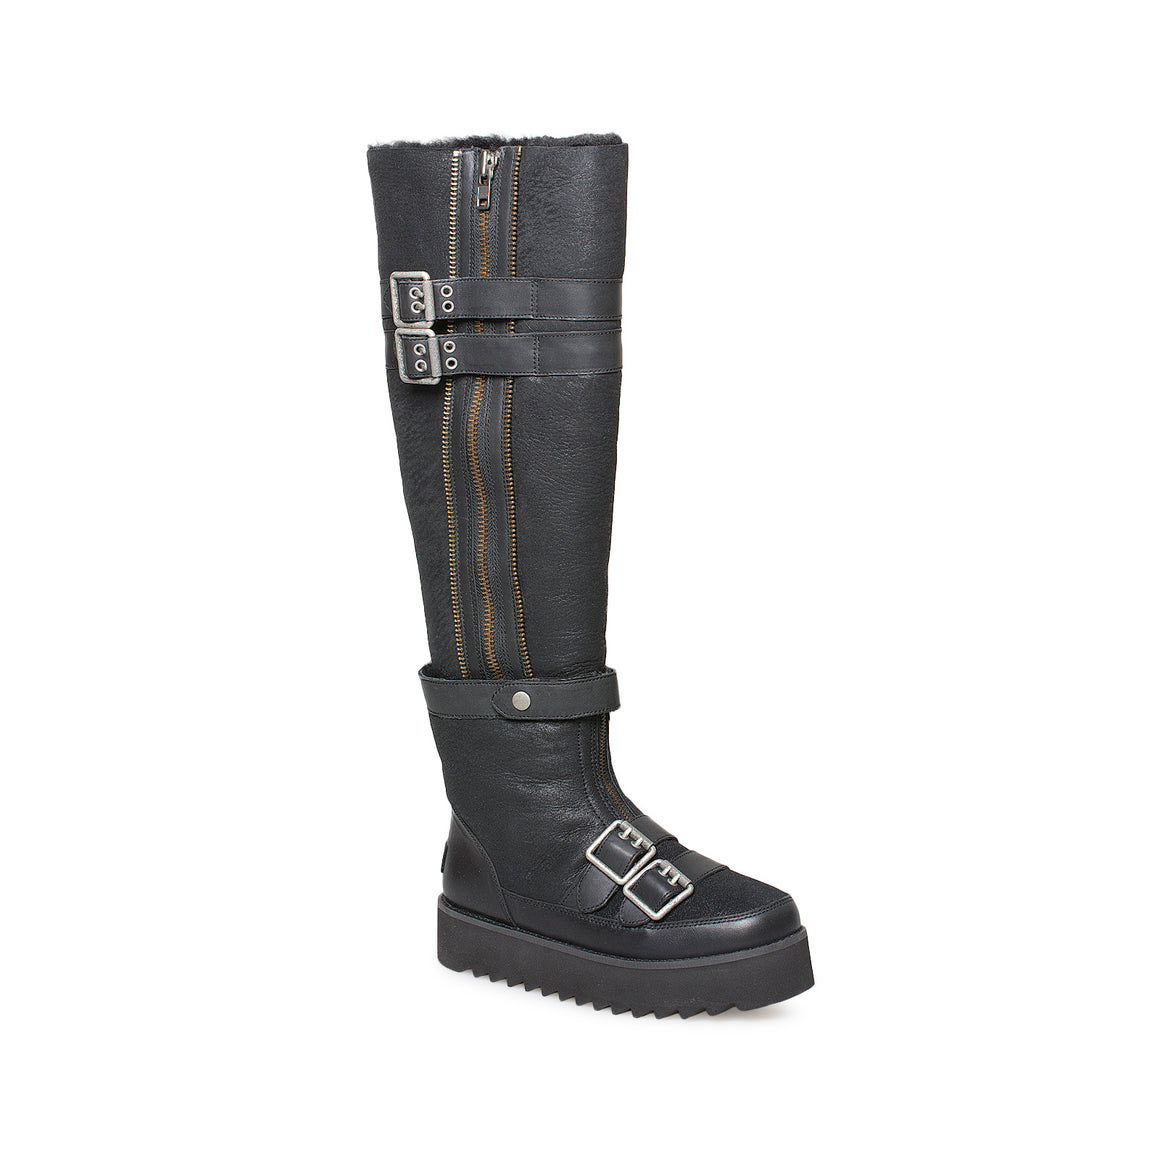 UGG Moto Punk Over The Knee Black Boots - Women's